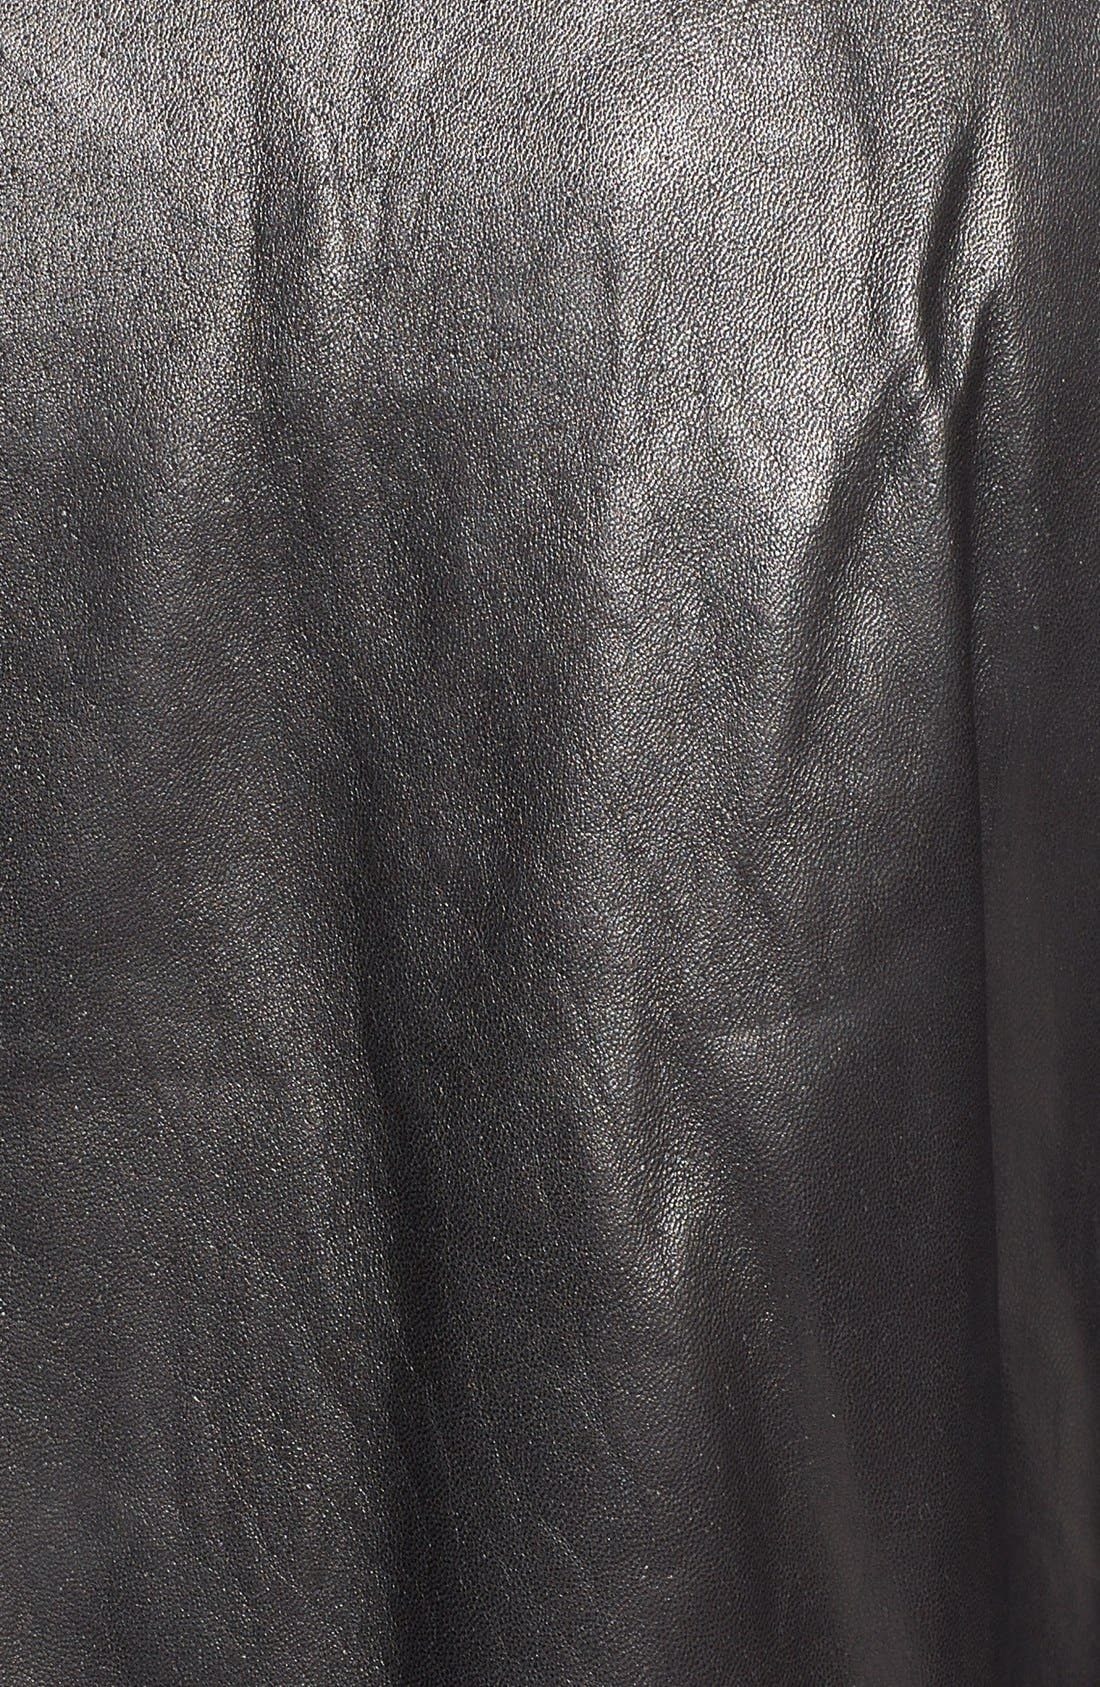 Lambskin Leather Car Coat,                             Alternate thumbnail 3, color,                             001